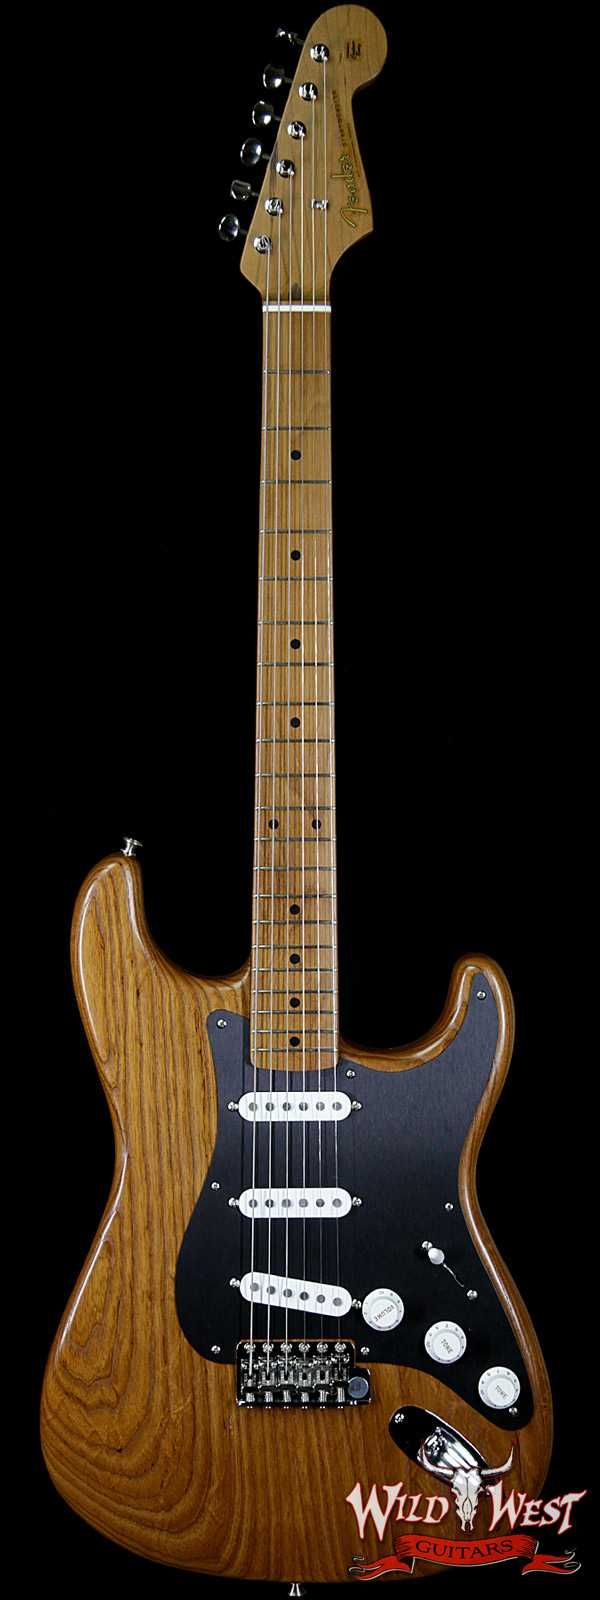 Fender USA FSR American Vintage Limited Edition '56 1956 Stratocaster Roasted Natural V1741762 - Wild West Guitars